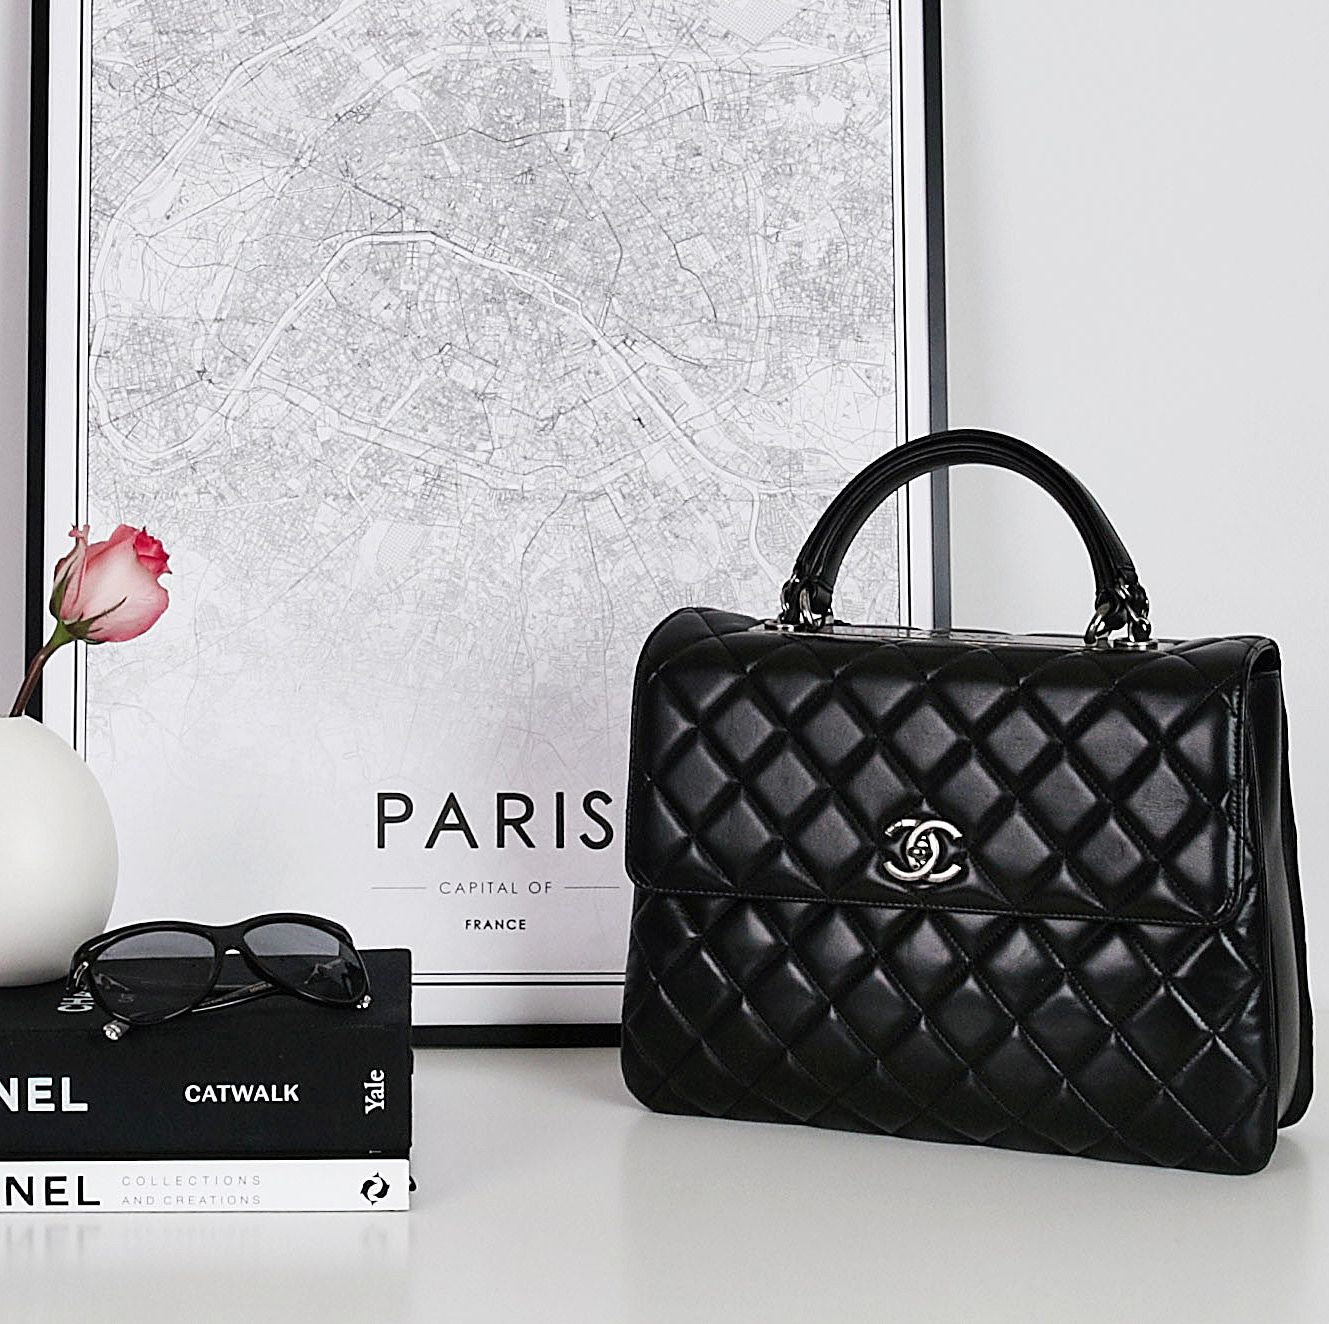 Chanel Trendy Bag Chanel Bag Fashion Style Sunglasses Productphotography Handbags Used Chanel Bags Chanel Bag Bags